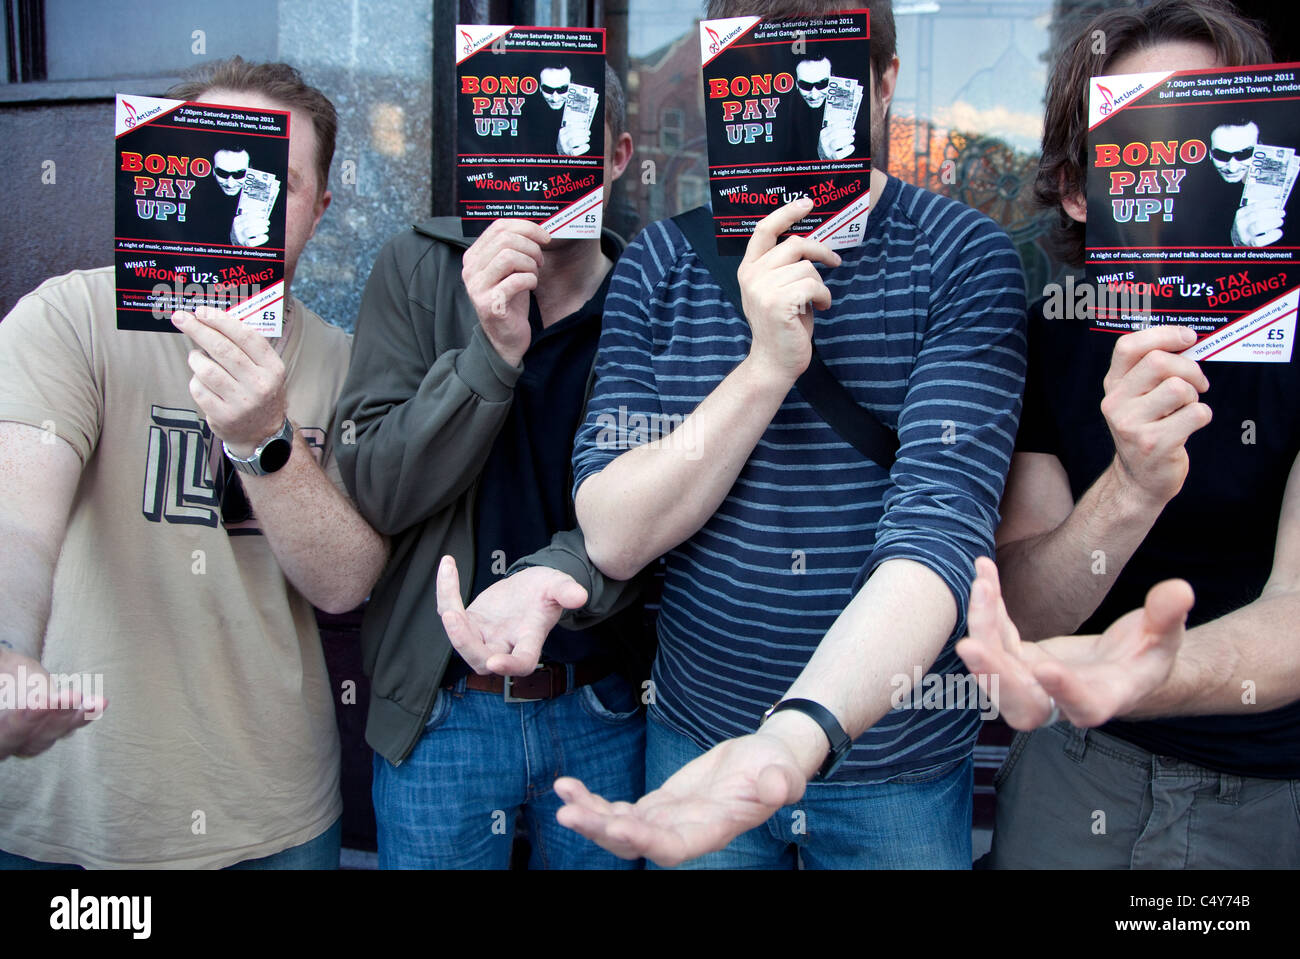 Supporters of Art Uncut at the Bono Pay Up! show at Bull & Gate, Kentish Town, London - Stock Image